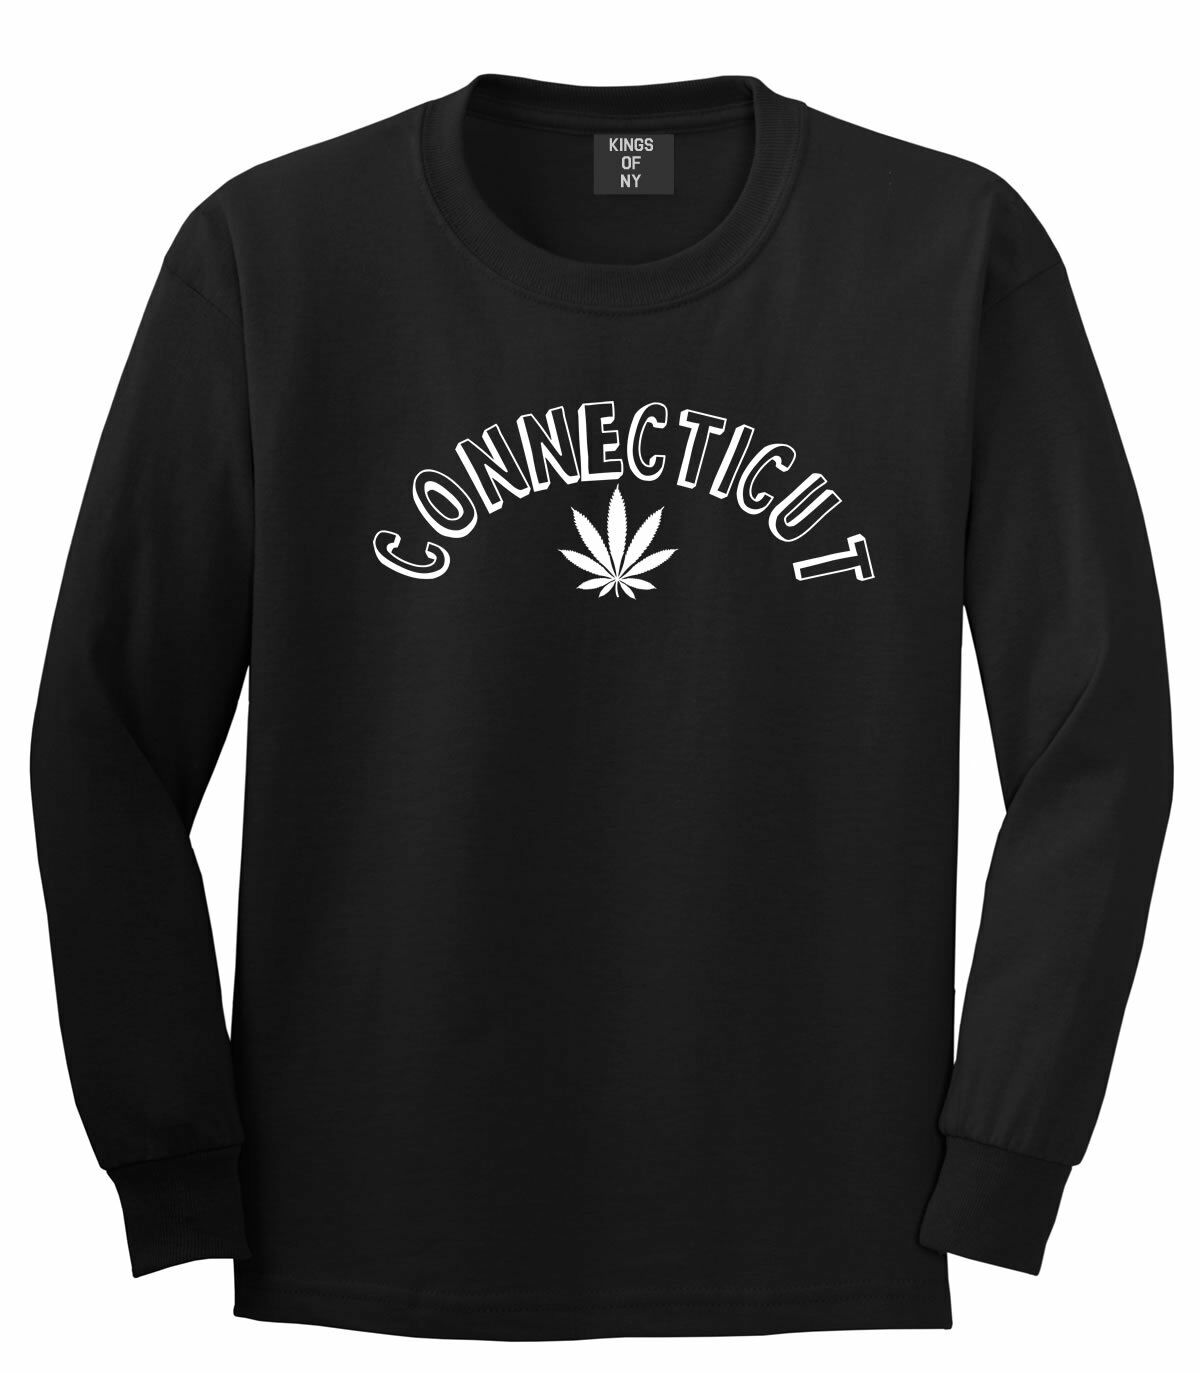 Marijuana Weed Connecticut USA State CT Long Sleeve T-Shirt 2